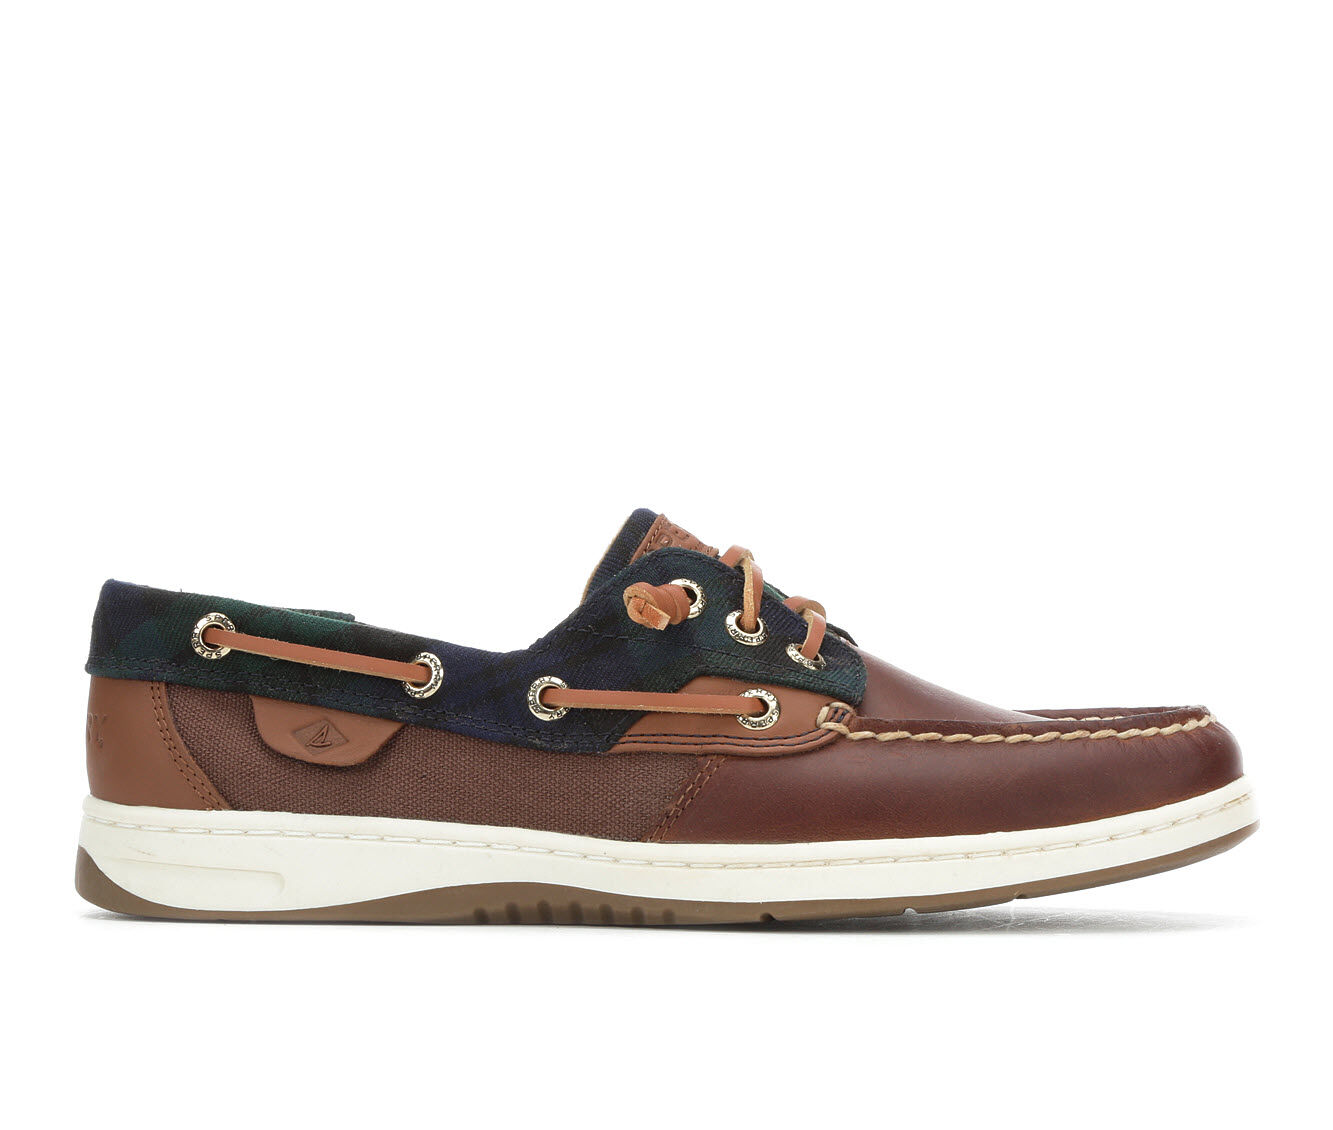 Women's Sperry Rosefish Plaid Boat Shoes Dk Brown/Navy